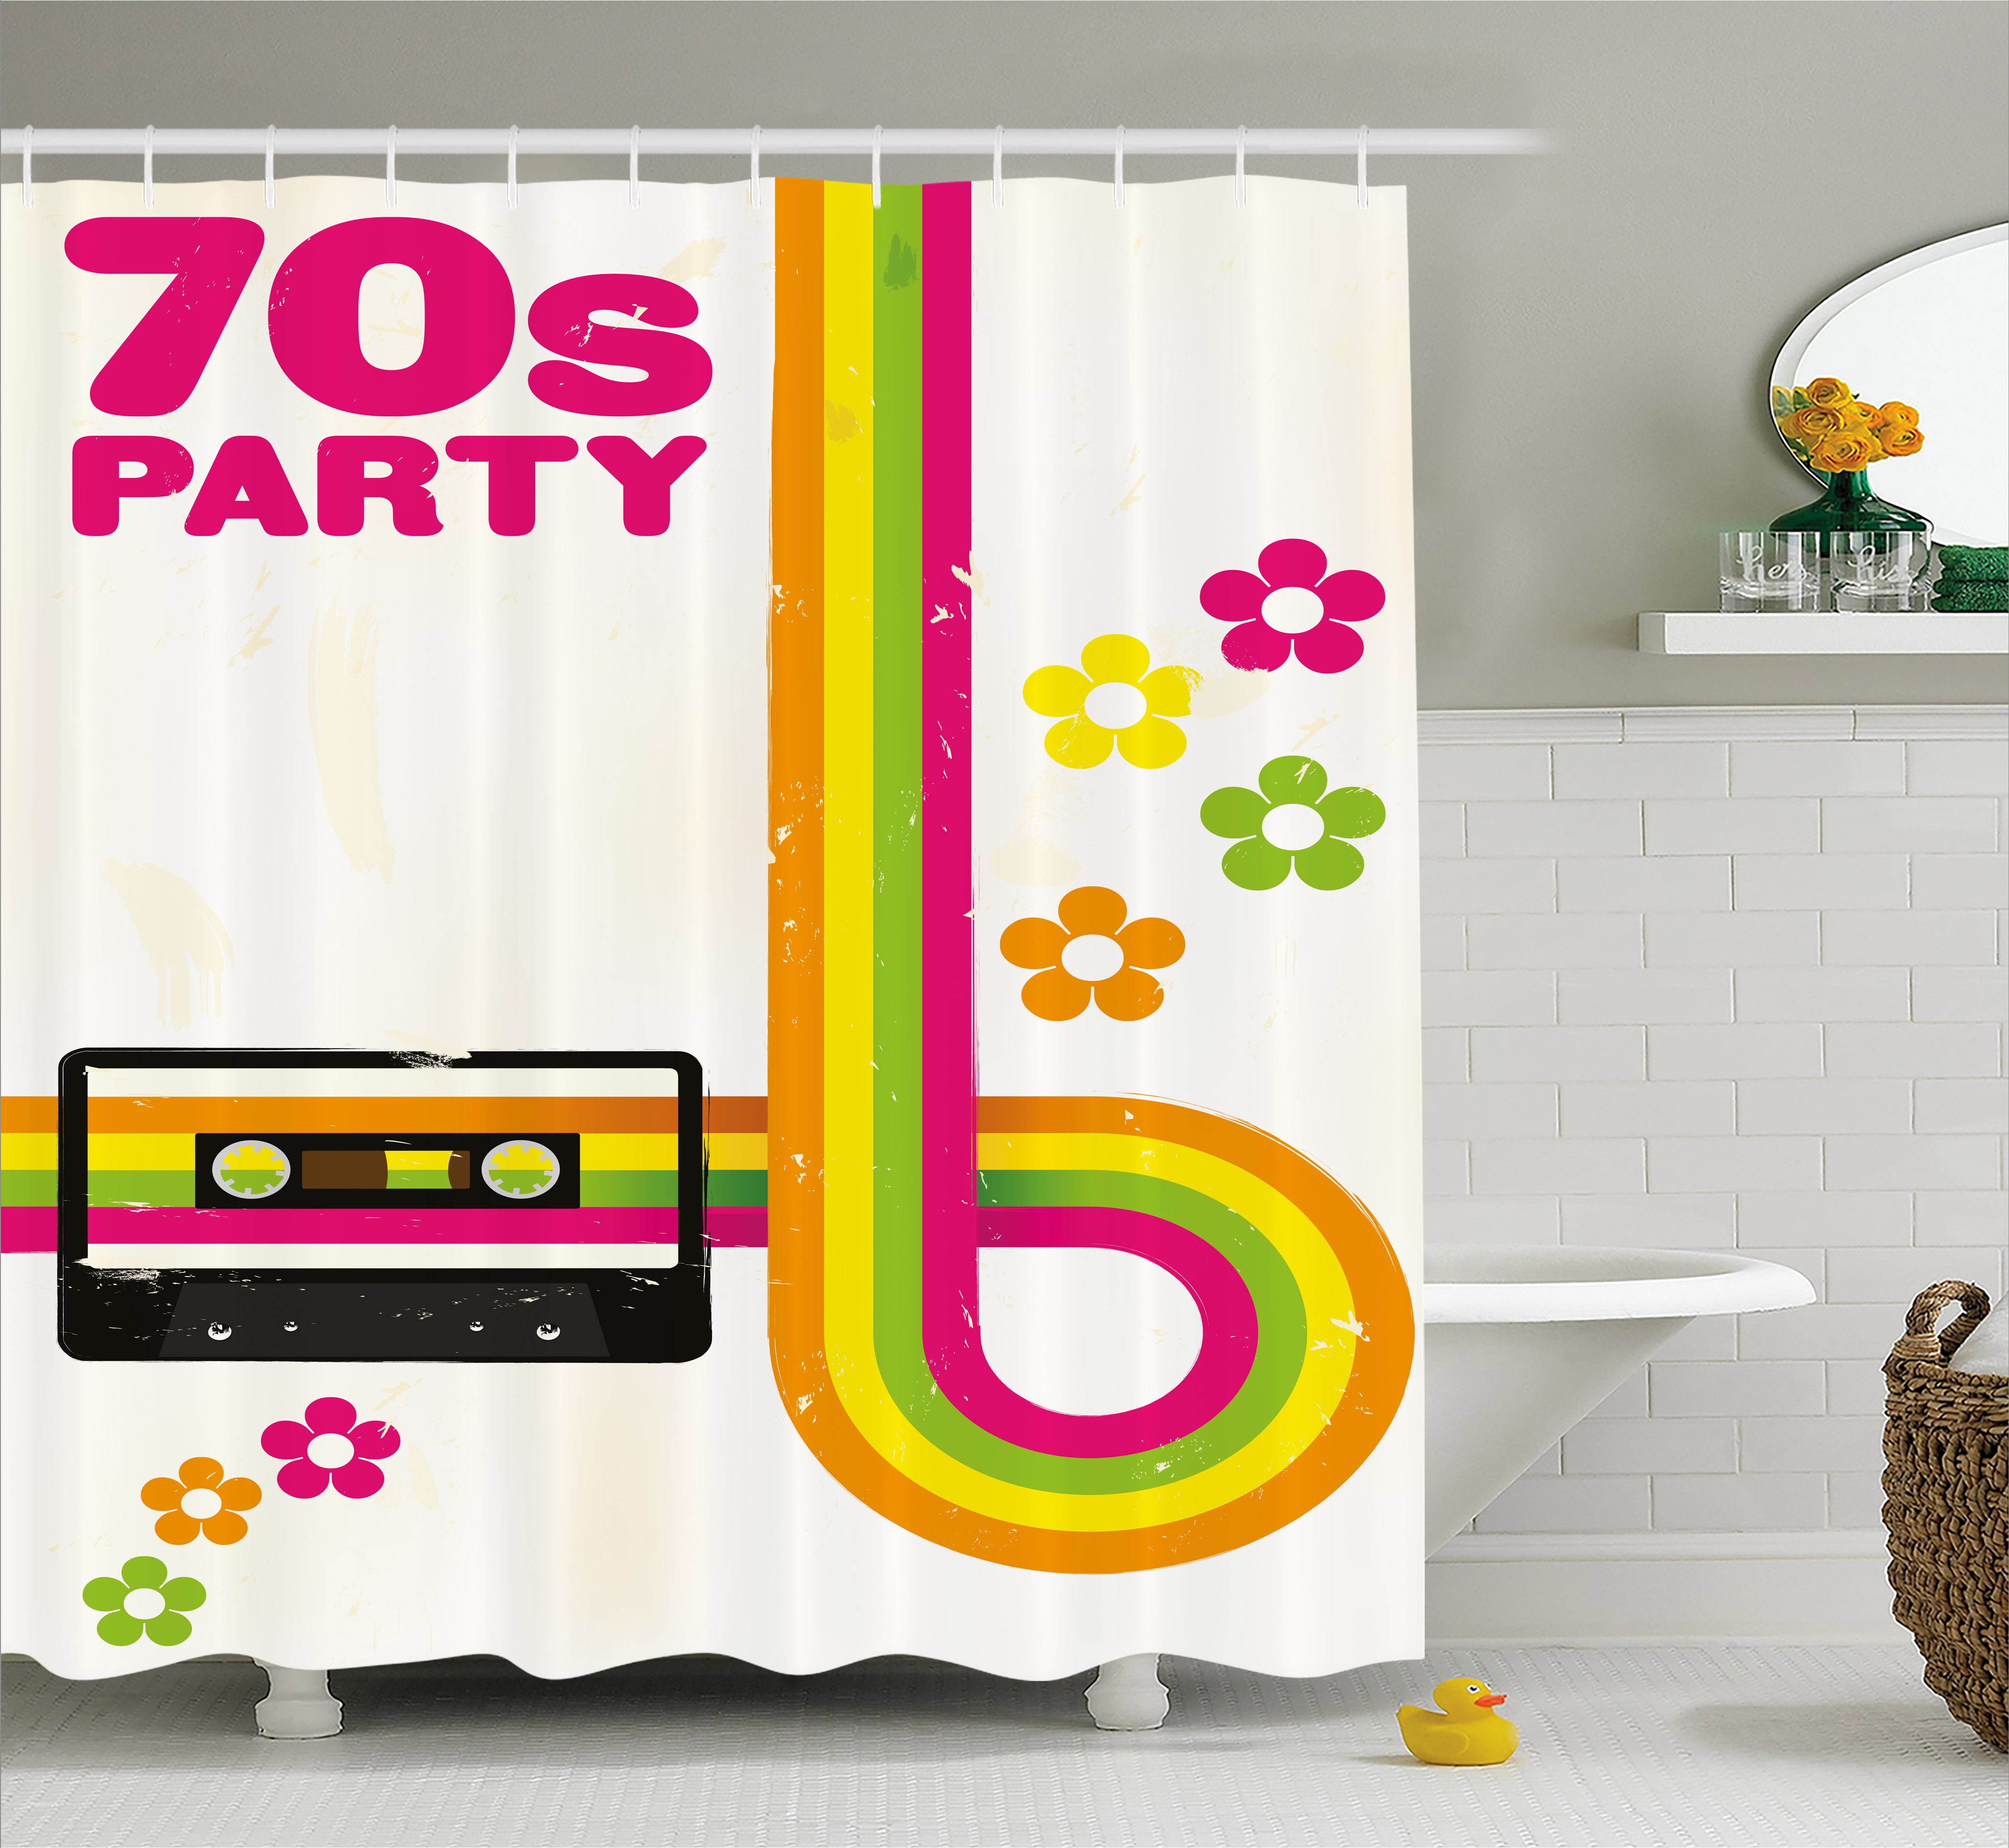 70s Party Decorations Shower Curtain, Party Flyer Inspired Cute Curved Stripes Daisies Audio Cassette Tape, Fabric Bathroom Set with Hooks, 69W X 84L Inches Extra Long, Multicolor, by Ambesonne